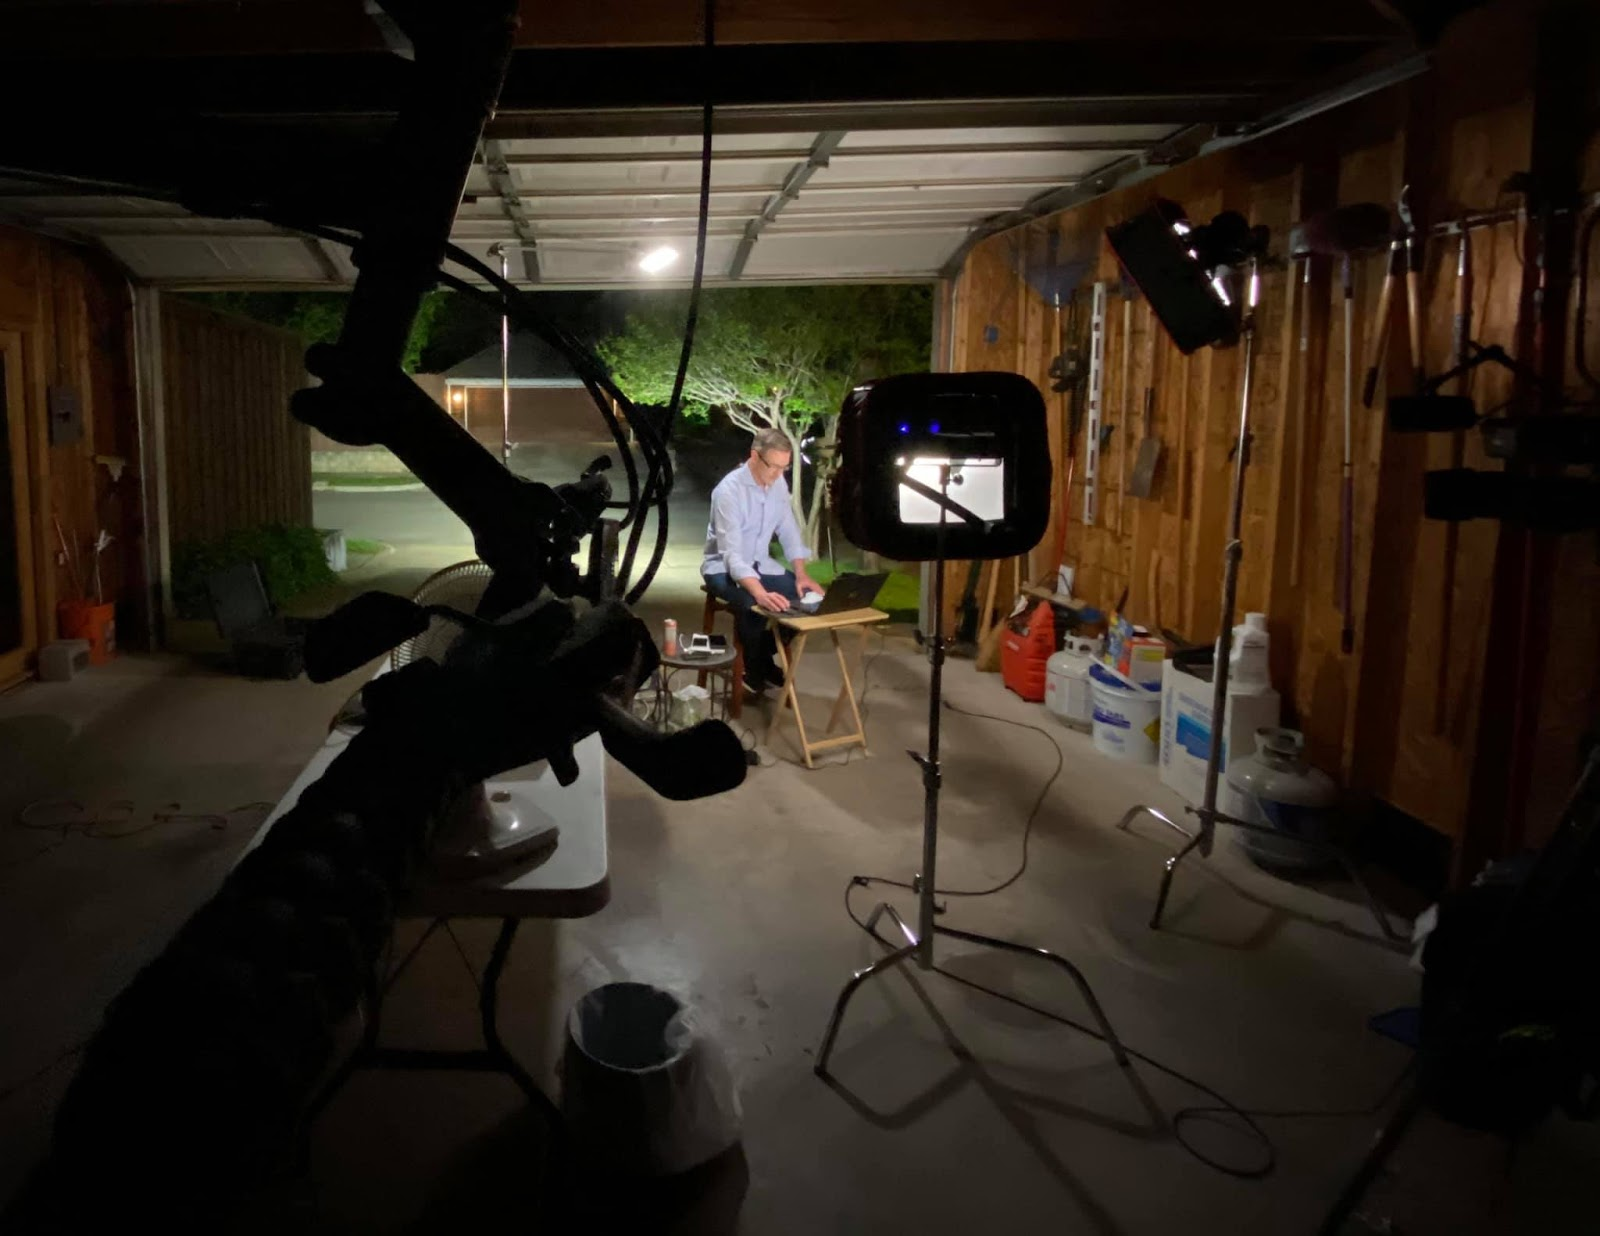 NBC5 photojournalist Nefty Gonzalez set up a make-shift studio in Brian Curtis's home, allowing them to broadcast live from a garage. Image courtesy of  Nefty Gonzalez NBC5 Photojournalist.